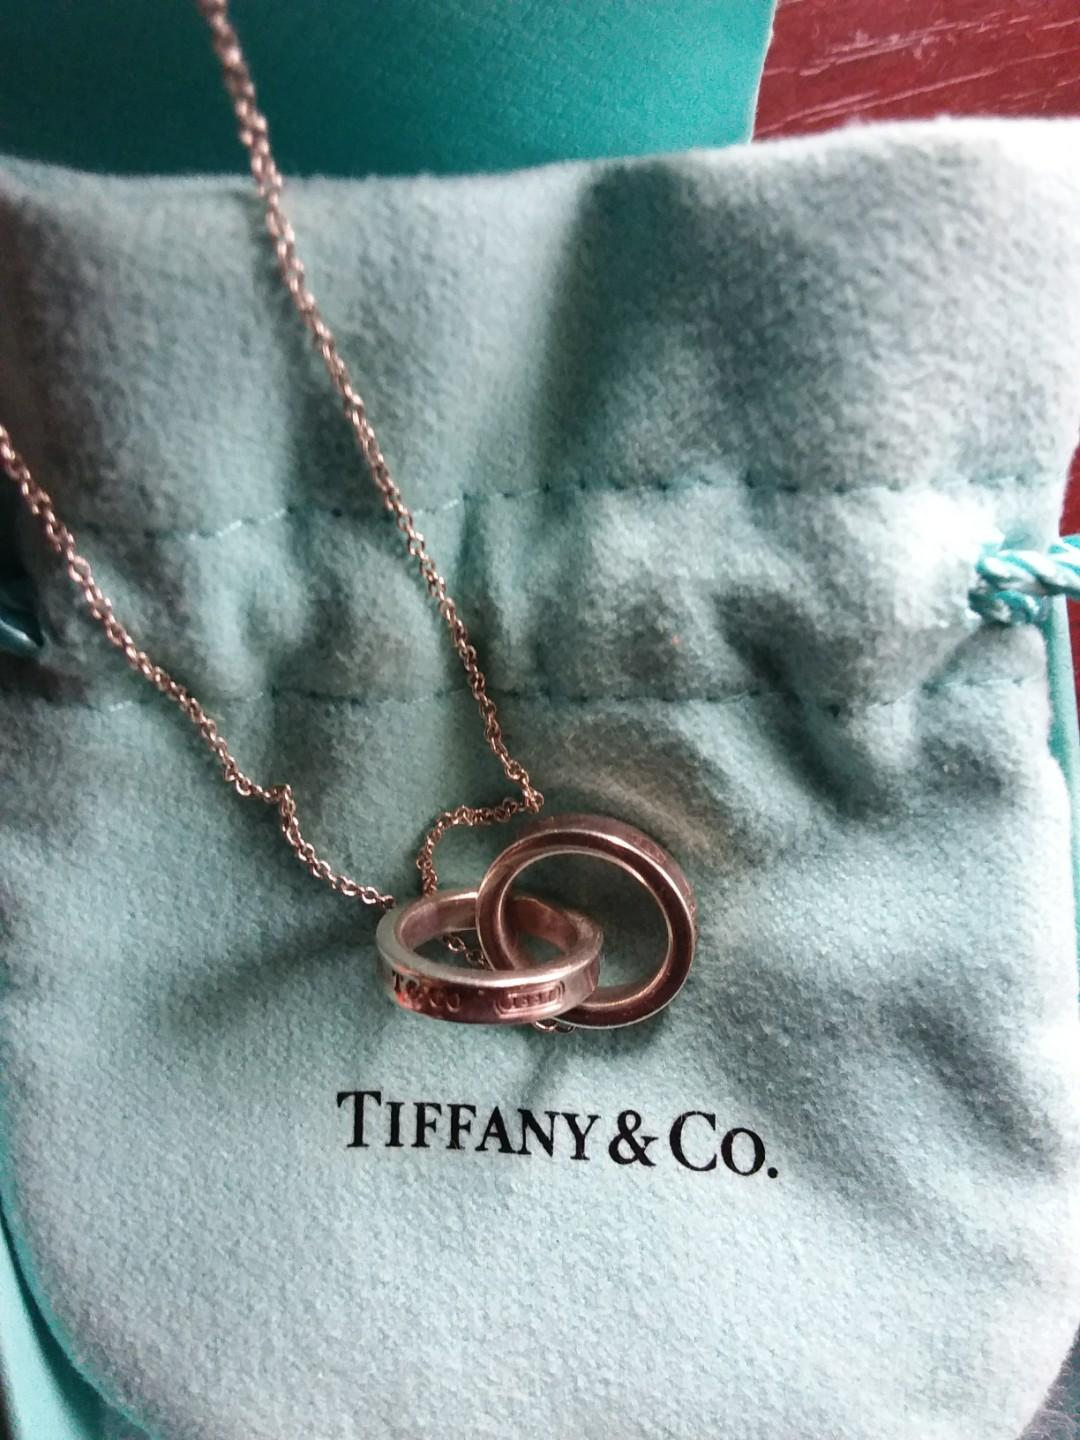 Tiffany & Co. 1837 Interlocking Double Circles Rings necklace